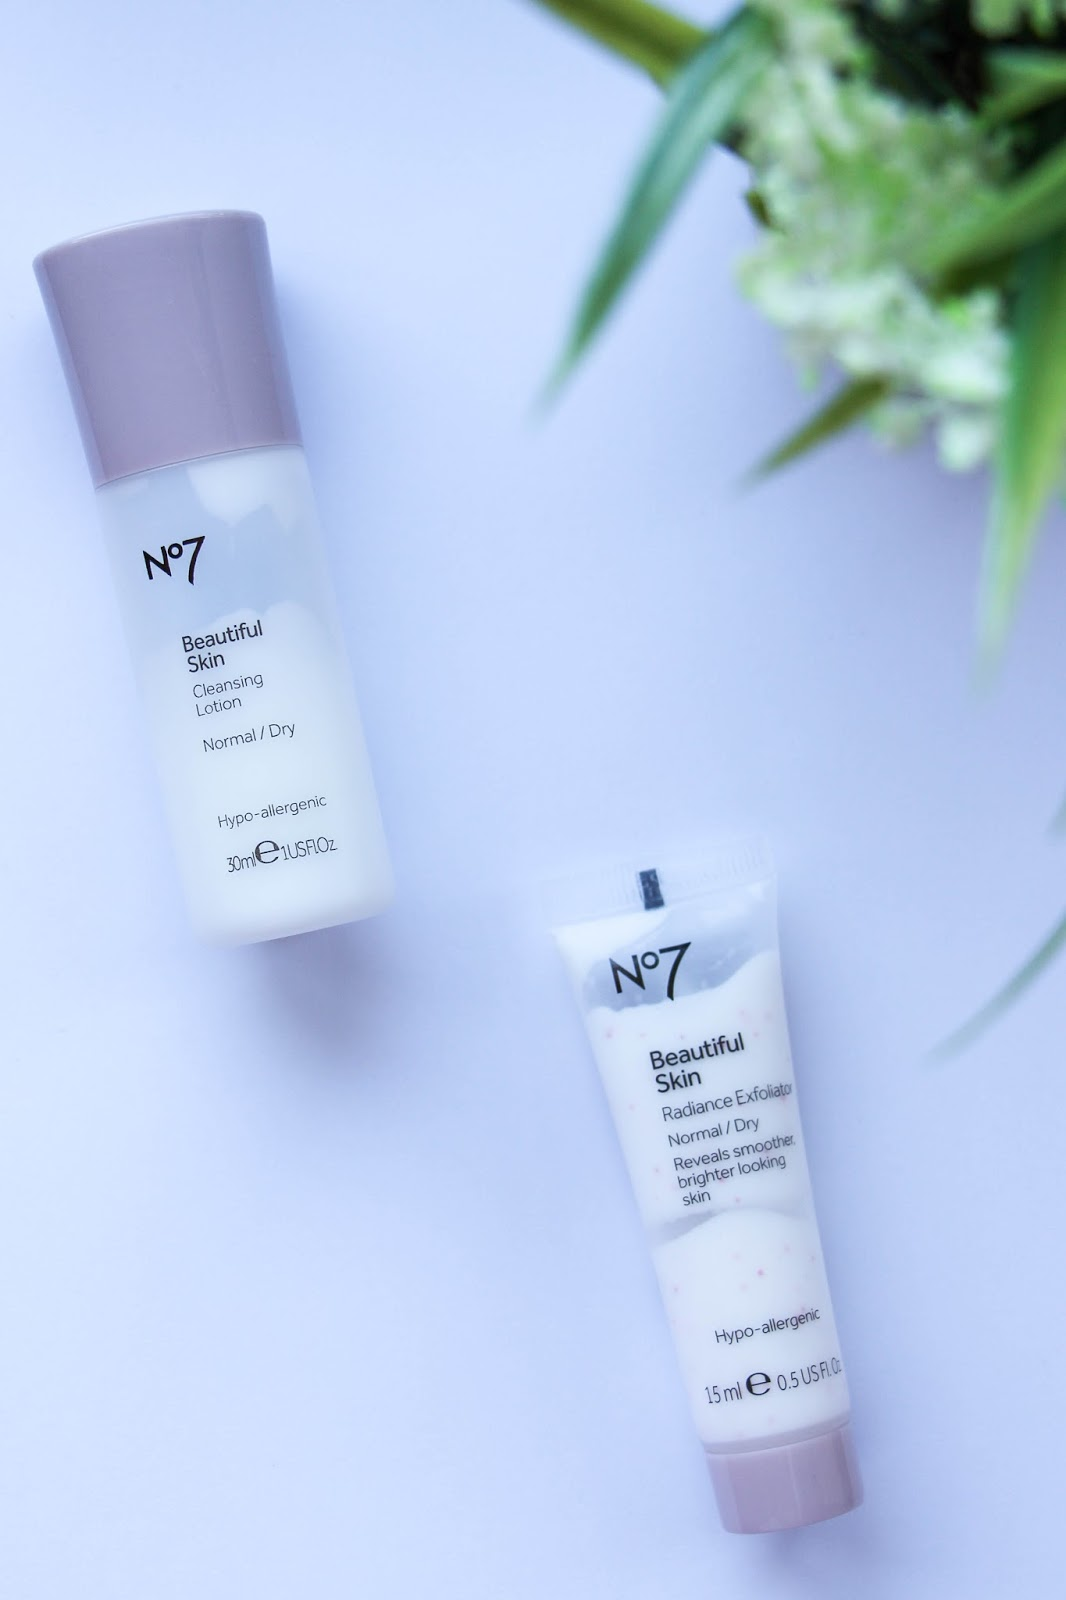 No 7 skin care products